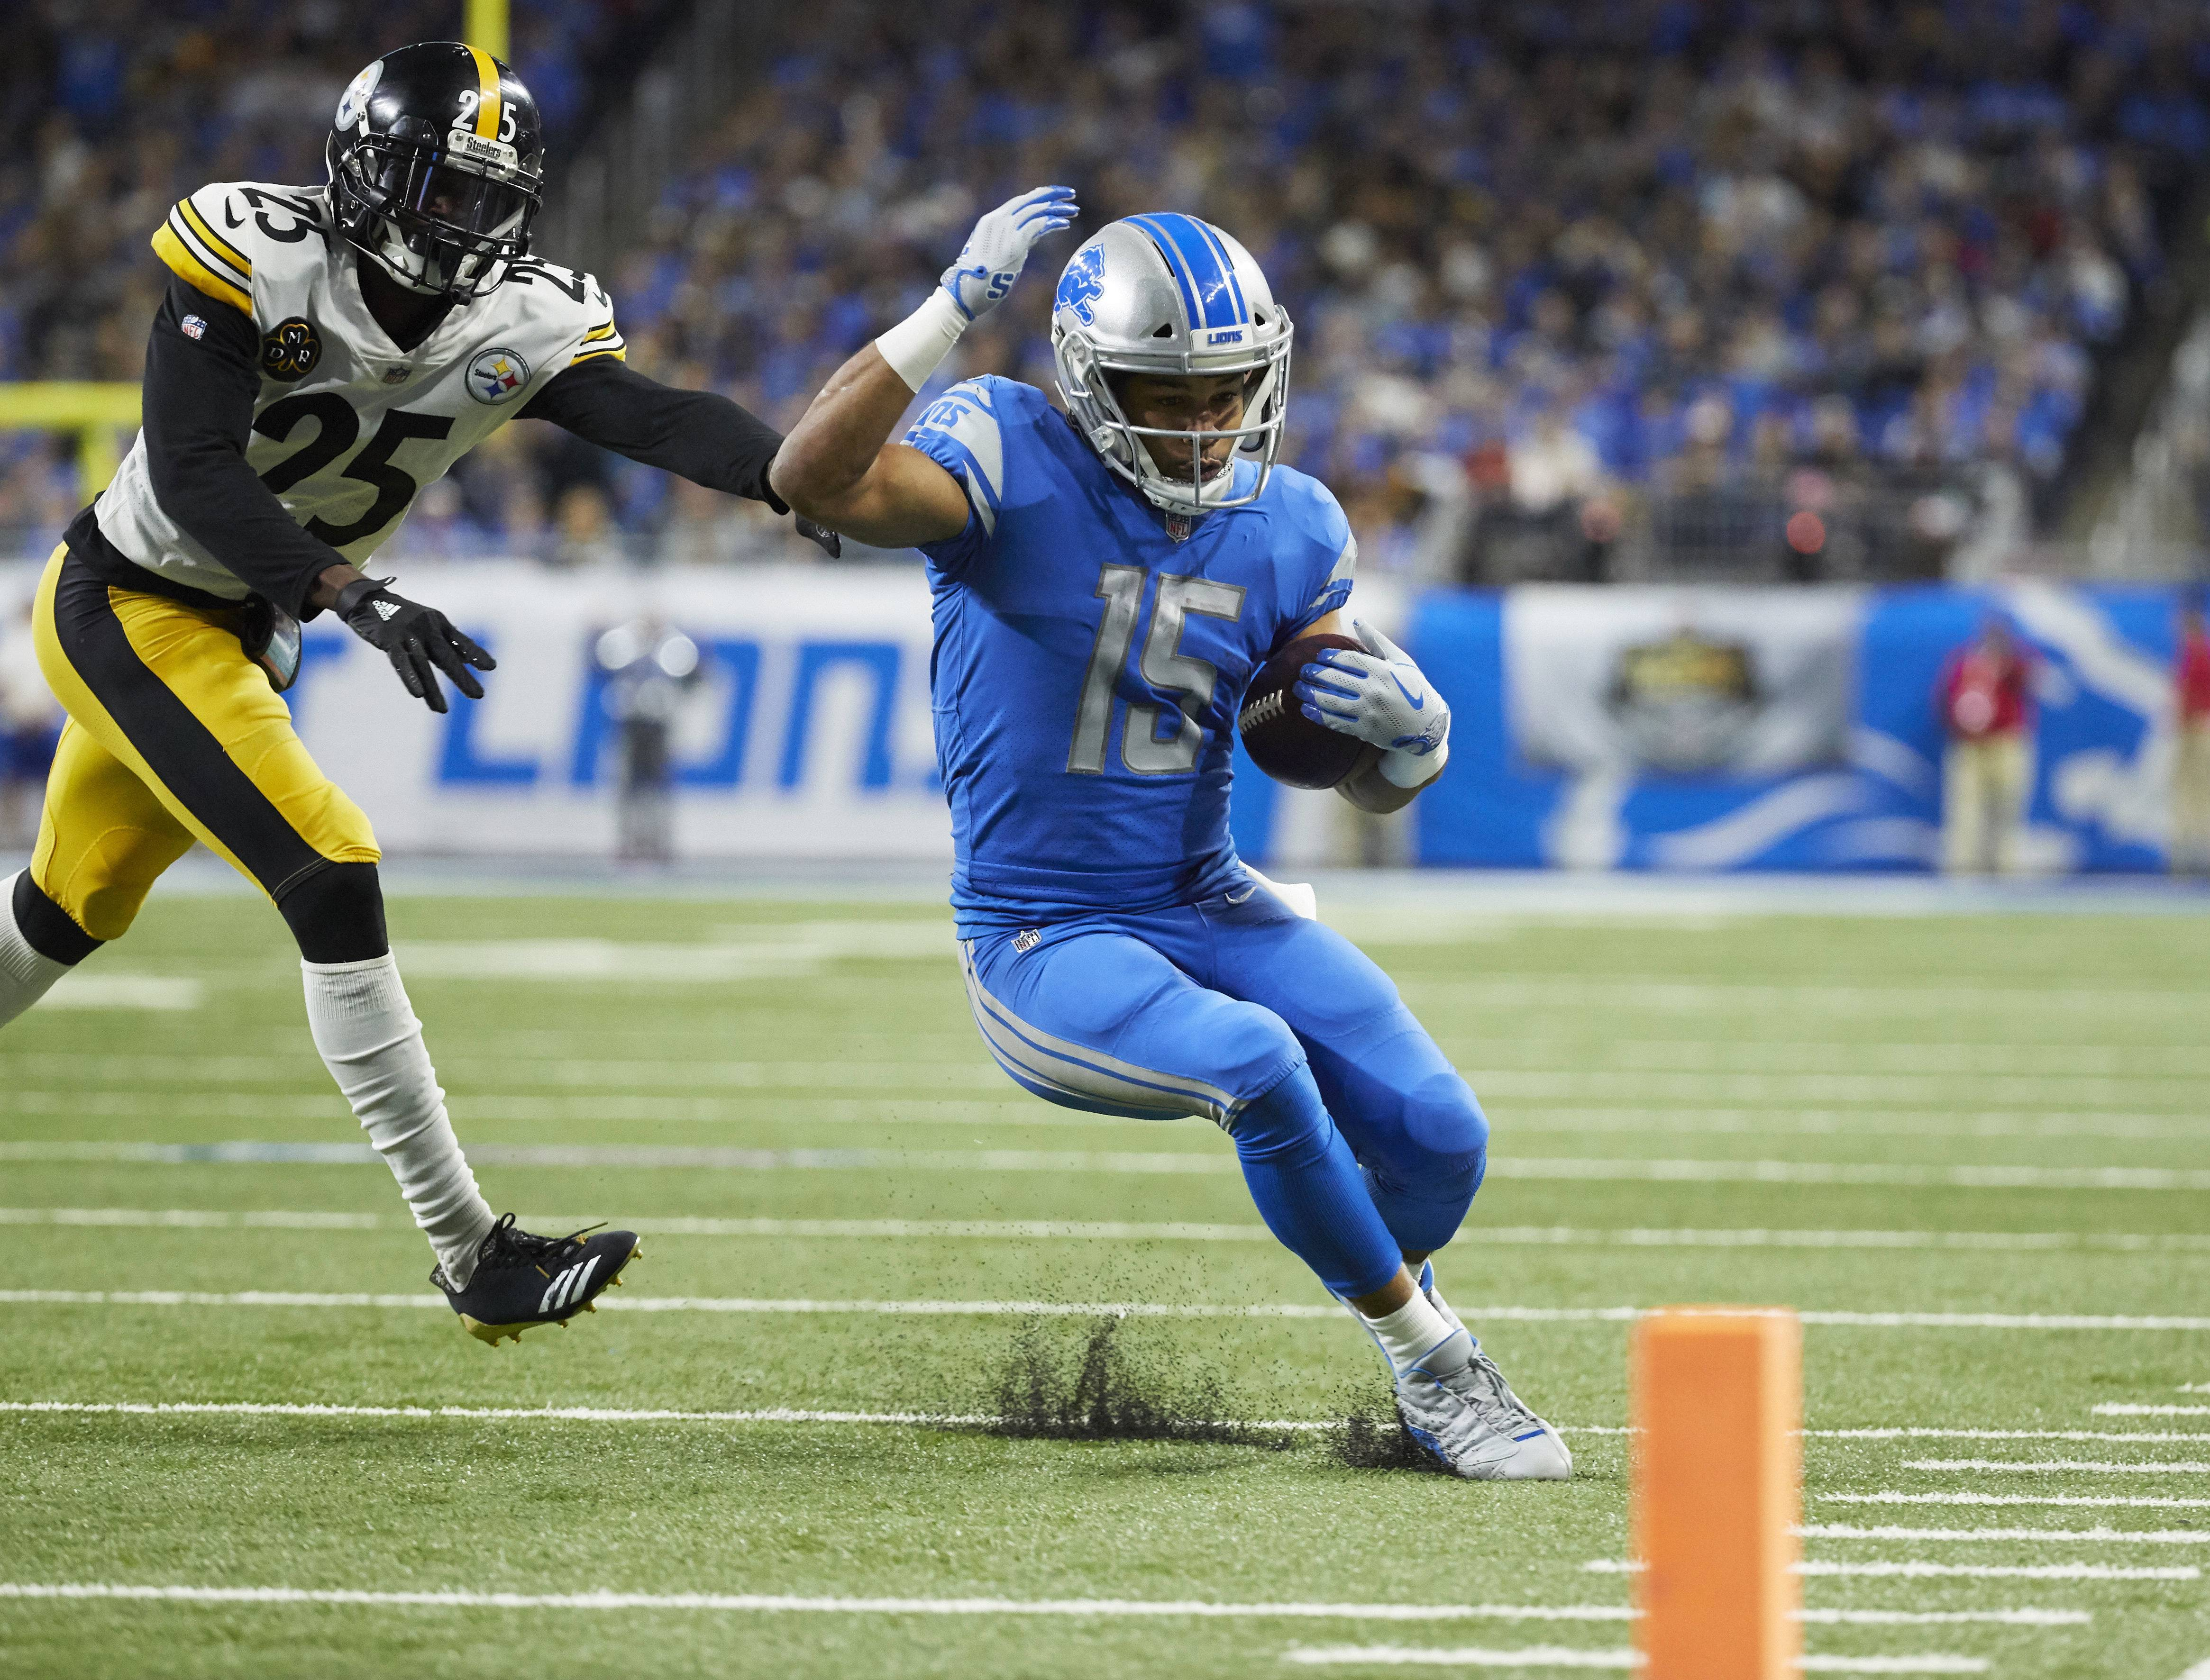 FILE - In this Oct. 29, 2017, file photo, Detroit Lions wide receiver Golden Tate (15) runs the ball while chased by Pittsburgh Steelers cornerback Artie Burns (25) during an NFL football game in Detroit. Tate remains Detroit's top receiver, with 56 catches for 659 yards on the season, and it now looks like he'll have plenty of help down the stretch. (AP Photo/Rick Osentoski, File)